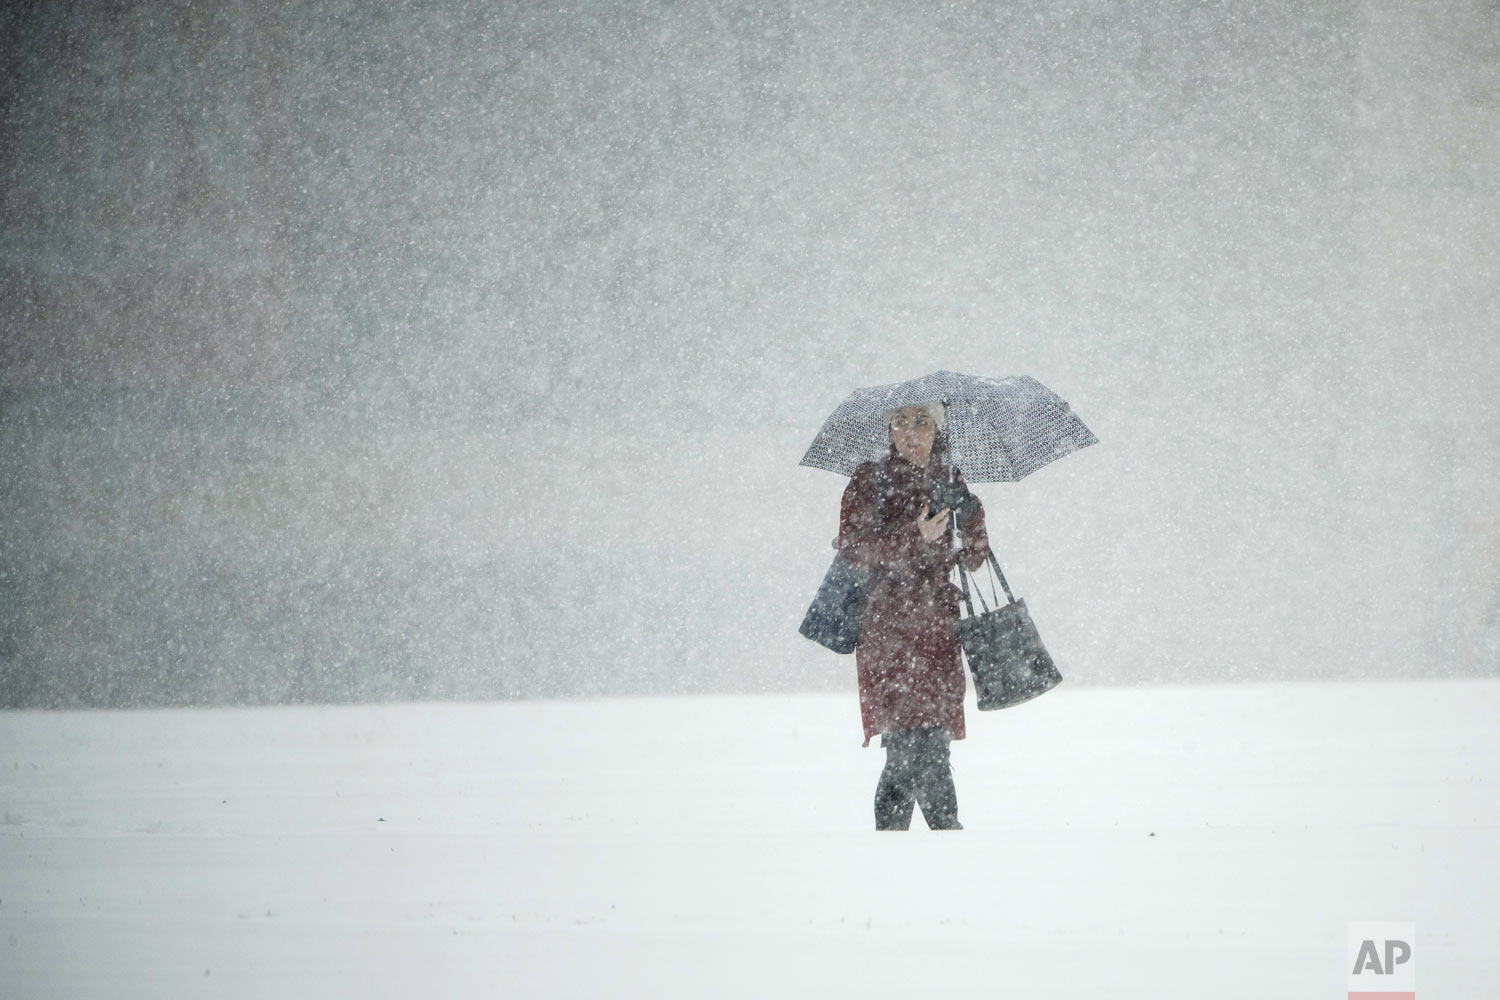 A person walks across Independence Mall during a snow storm in Philadelphia, Thursday, Nov. 15, 2018. (AP Photo/Matt Rourke)